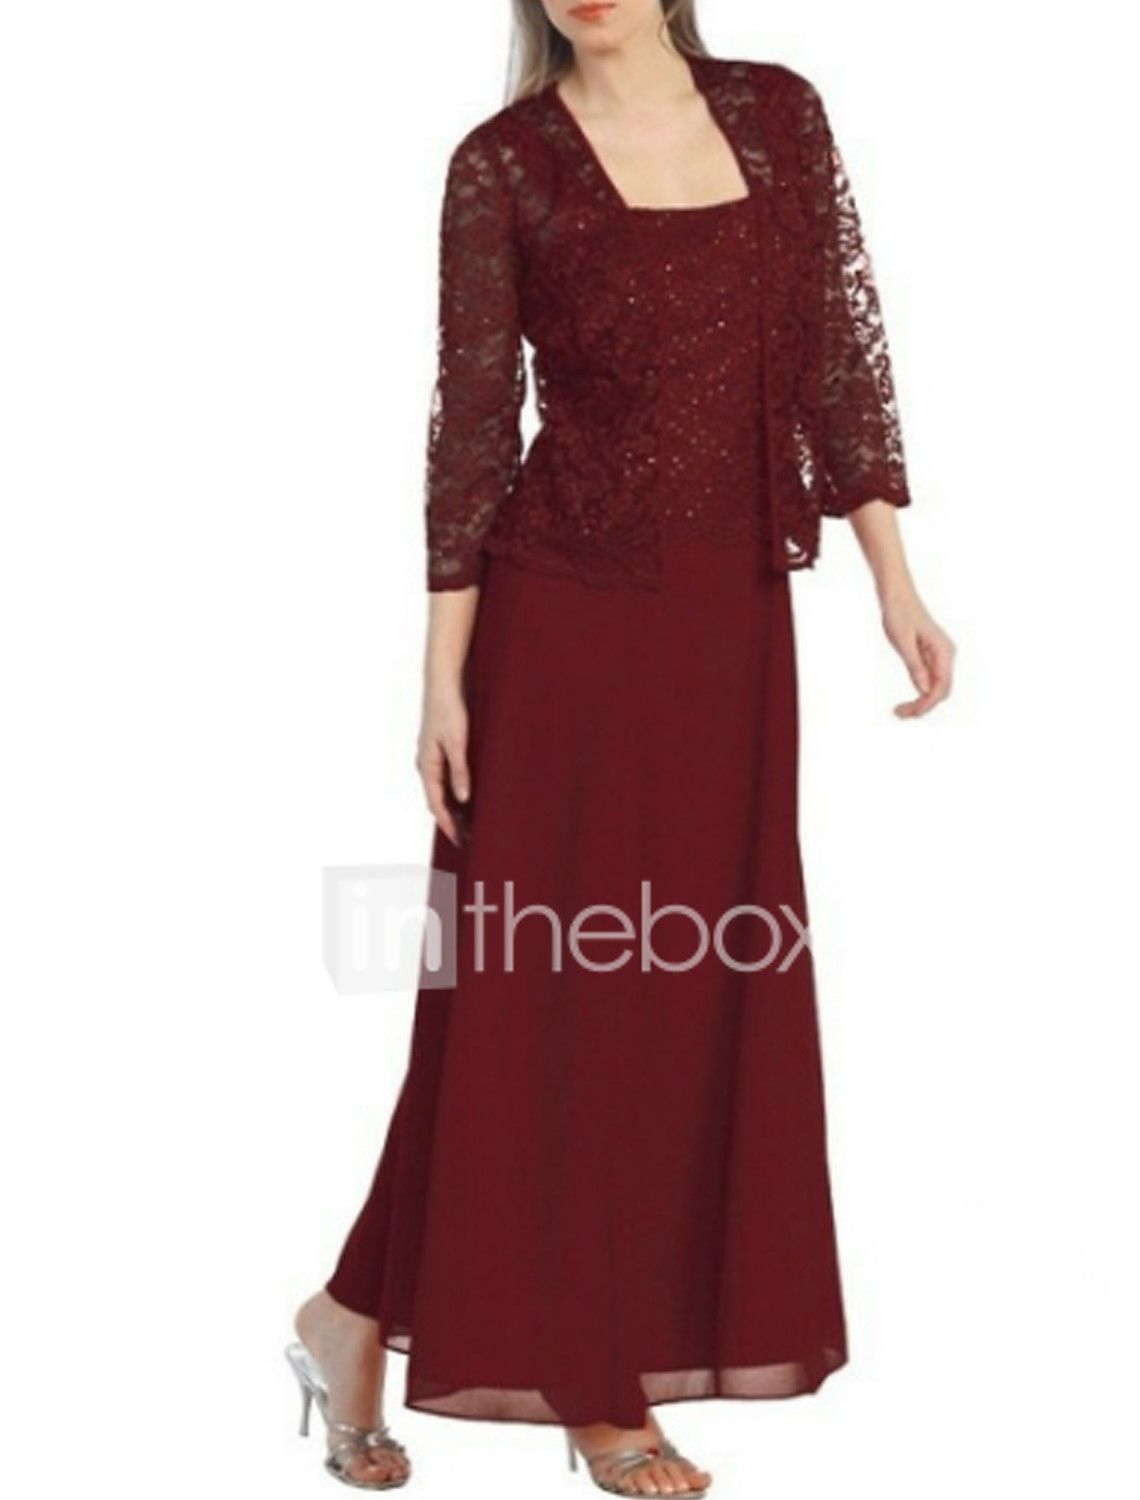 Women S Mother Of The Bride Dress 2020 Maxi Plus Size Wine Red Dress Basic Spring Summer Sheath Two Piece Solid Colored Strap Lace S M Slim 2020 Us 31 49 In